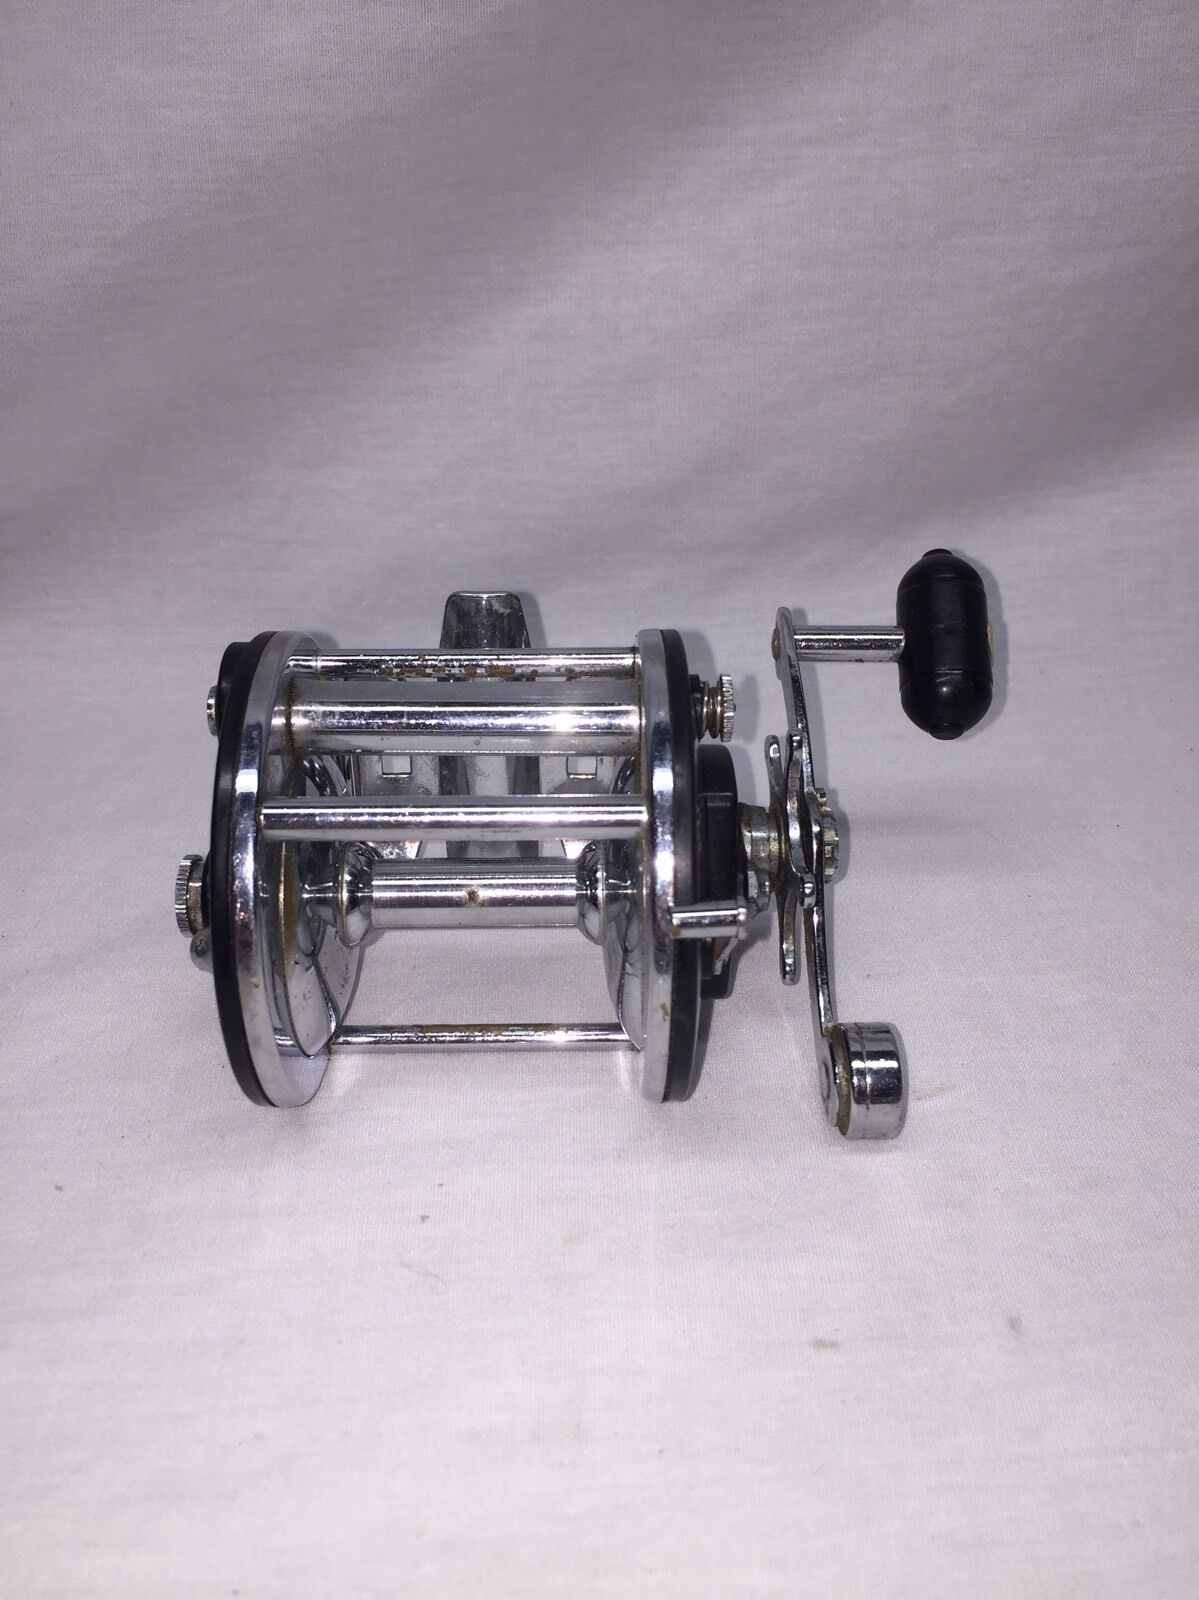 Vintage Rare Japanese Heddon 409 Casting  Reel Good Condition  free delivery and returns